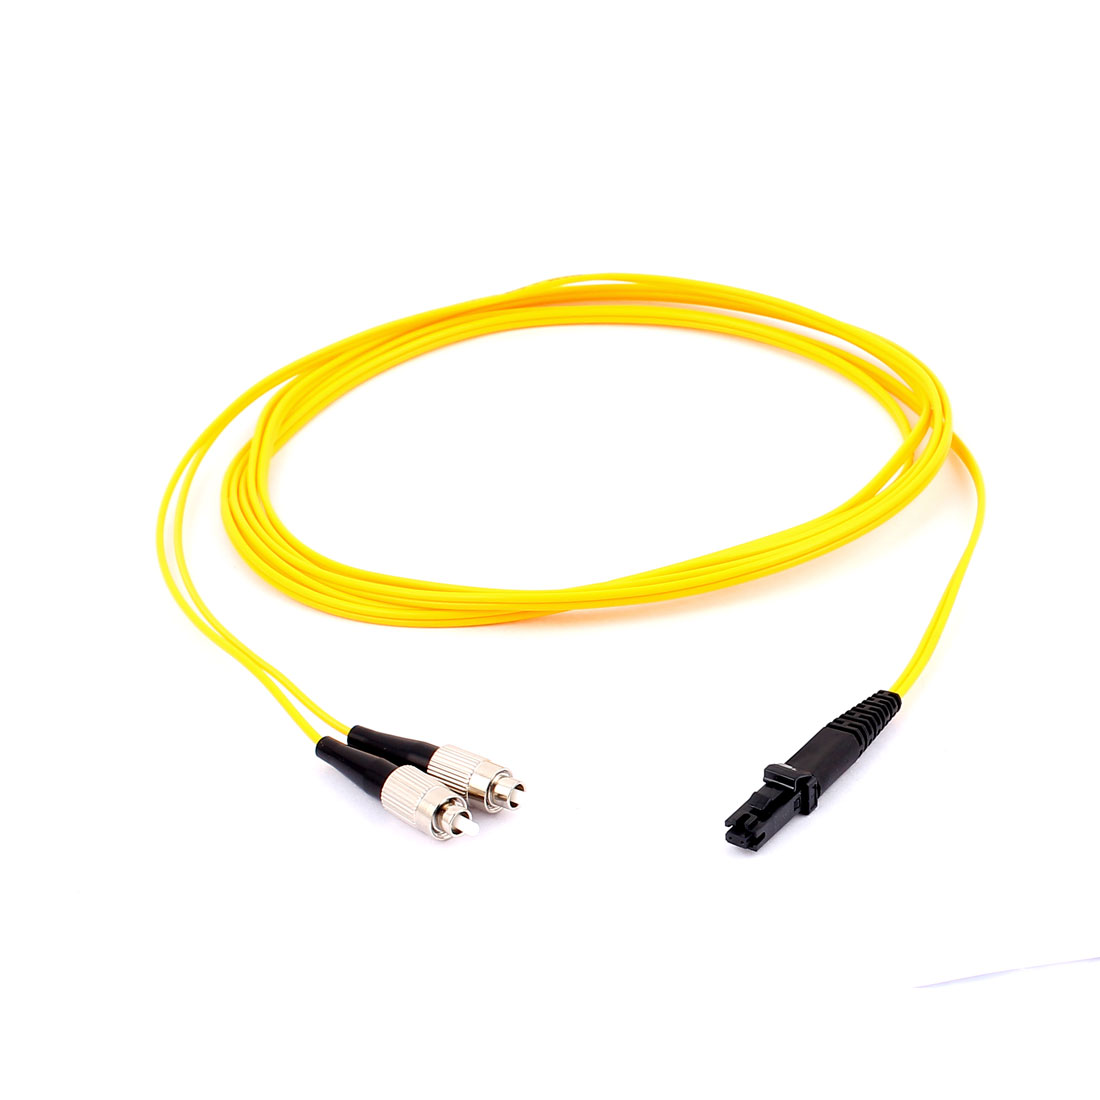 3.0M 9/125 Jumper Cable Duplex Singlemode MTRJ-FC Fiber Optic Cord